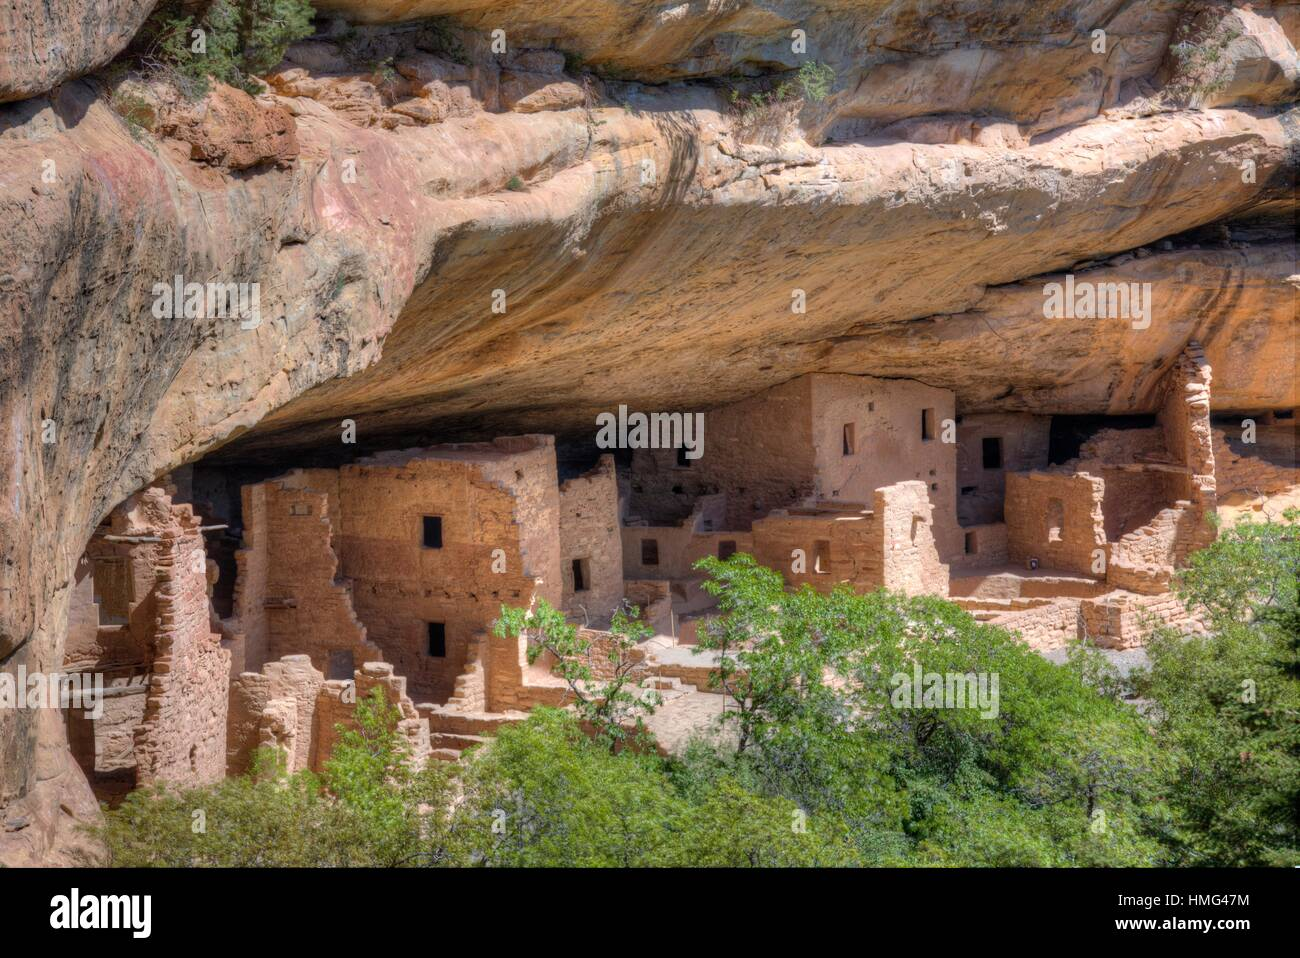 Spruce Tree House, Constructed between 1,211 and 1,278, Mesa Verde National Park, UNESCO World Heritage Site, Colorado, - Stock Image